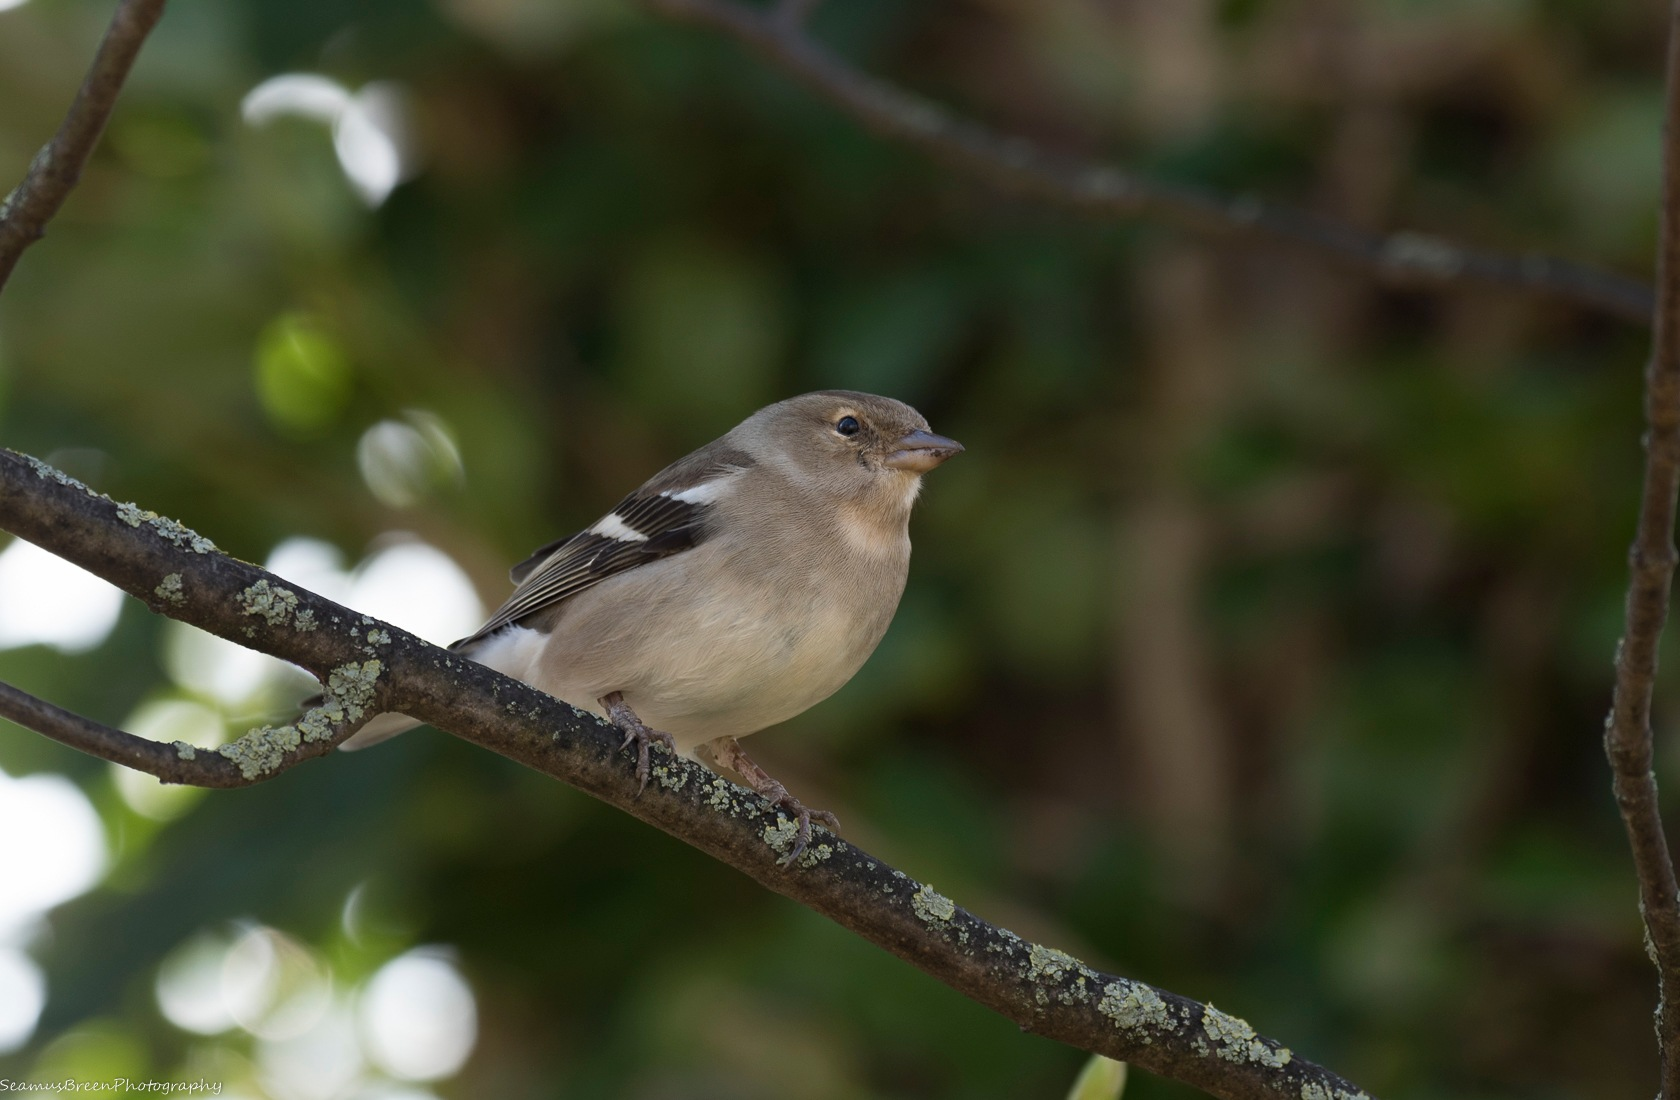 Bird in the Woods by seamusbreenphotos